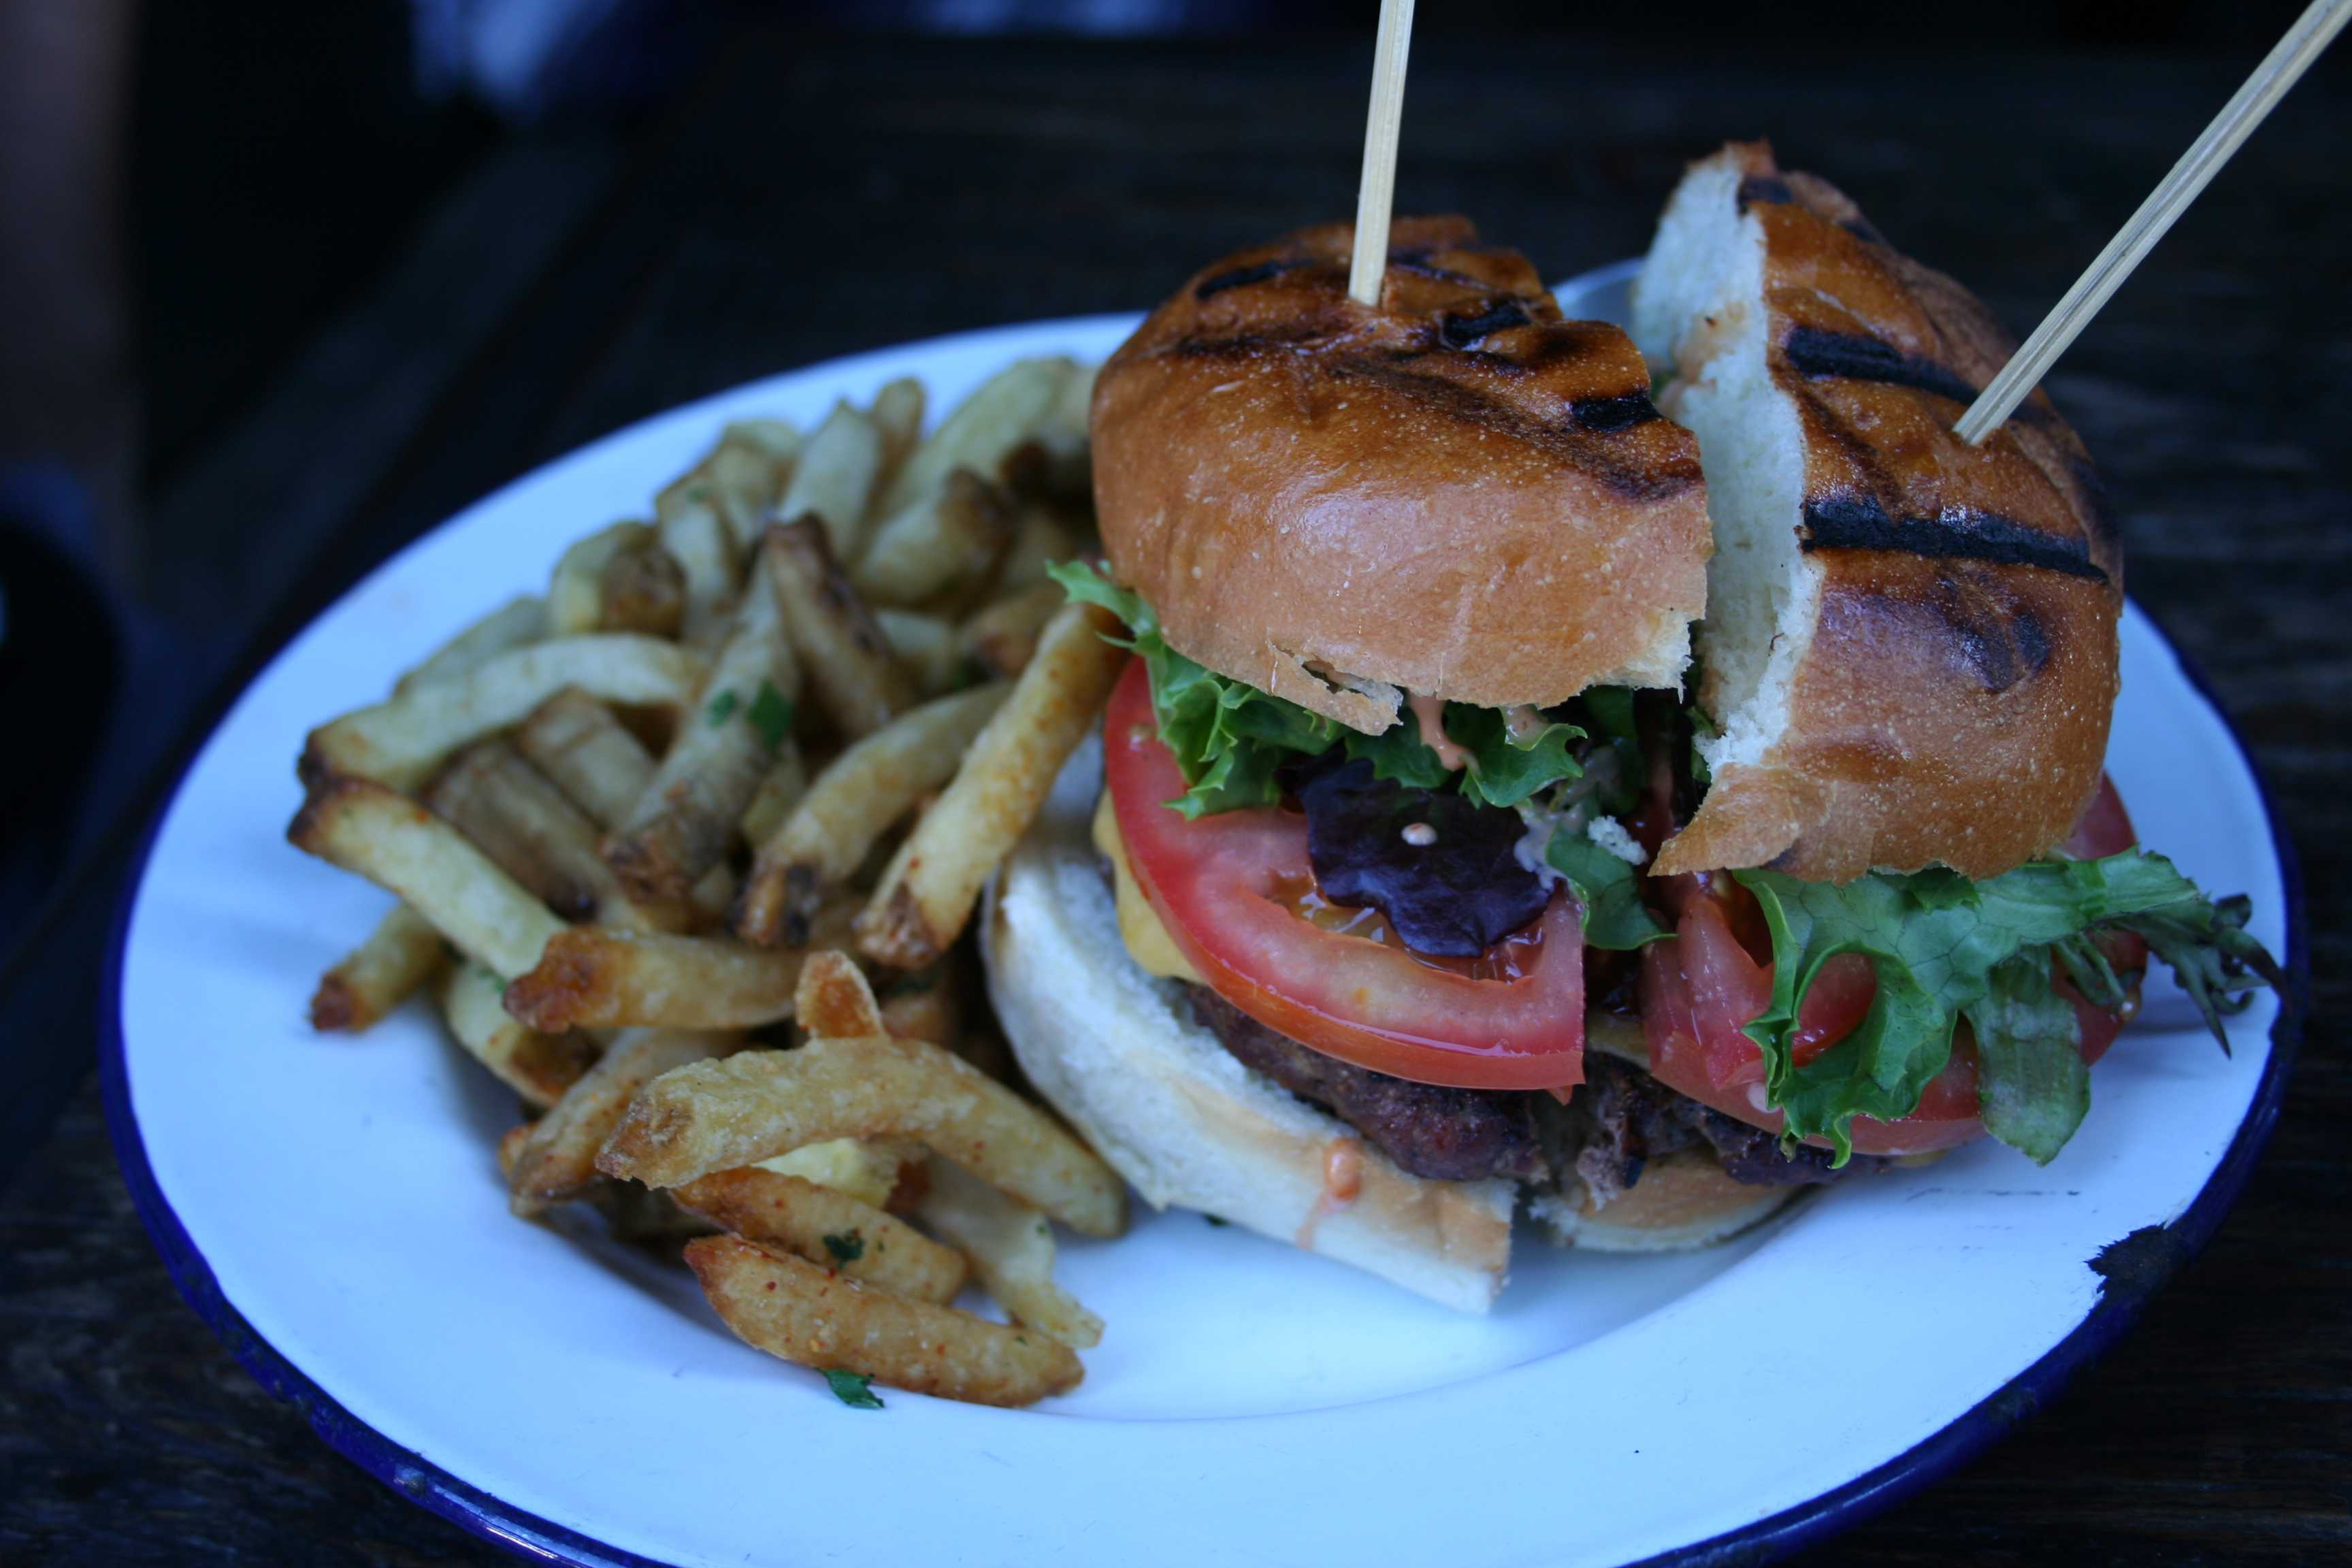 Contemporary American food is served at Craft and Commerce in Little Italy. Michelle Moran, City Times.